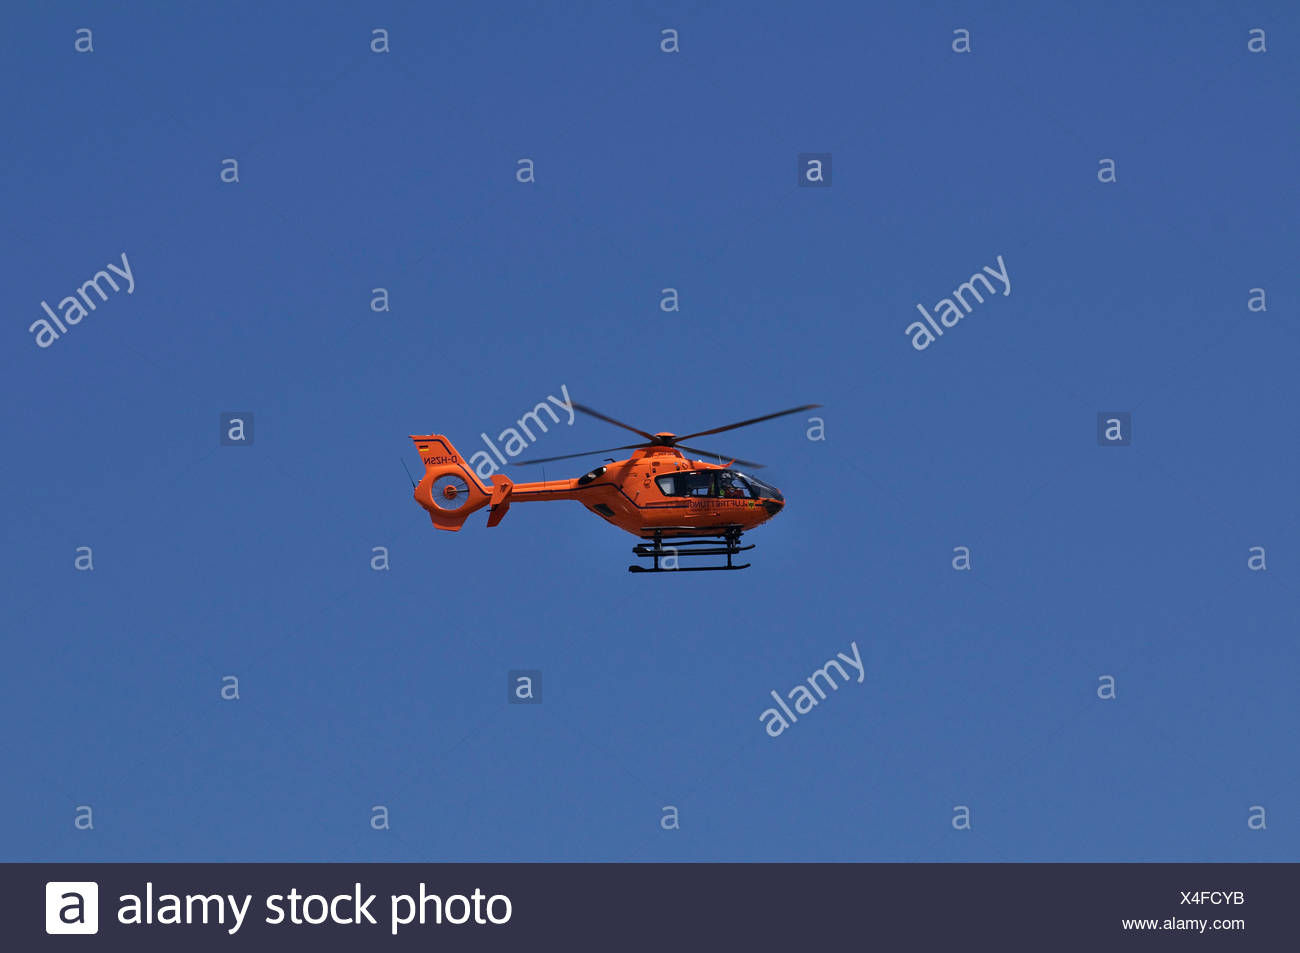 Christoph 9 rescue helicopter in flight, Eurocopter 135, Duisburg, rescue helicopter of the German Ministry of the Interior - Stock Image